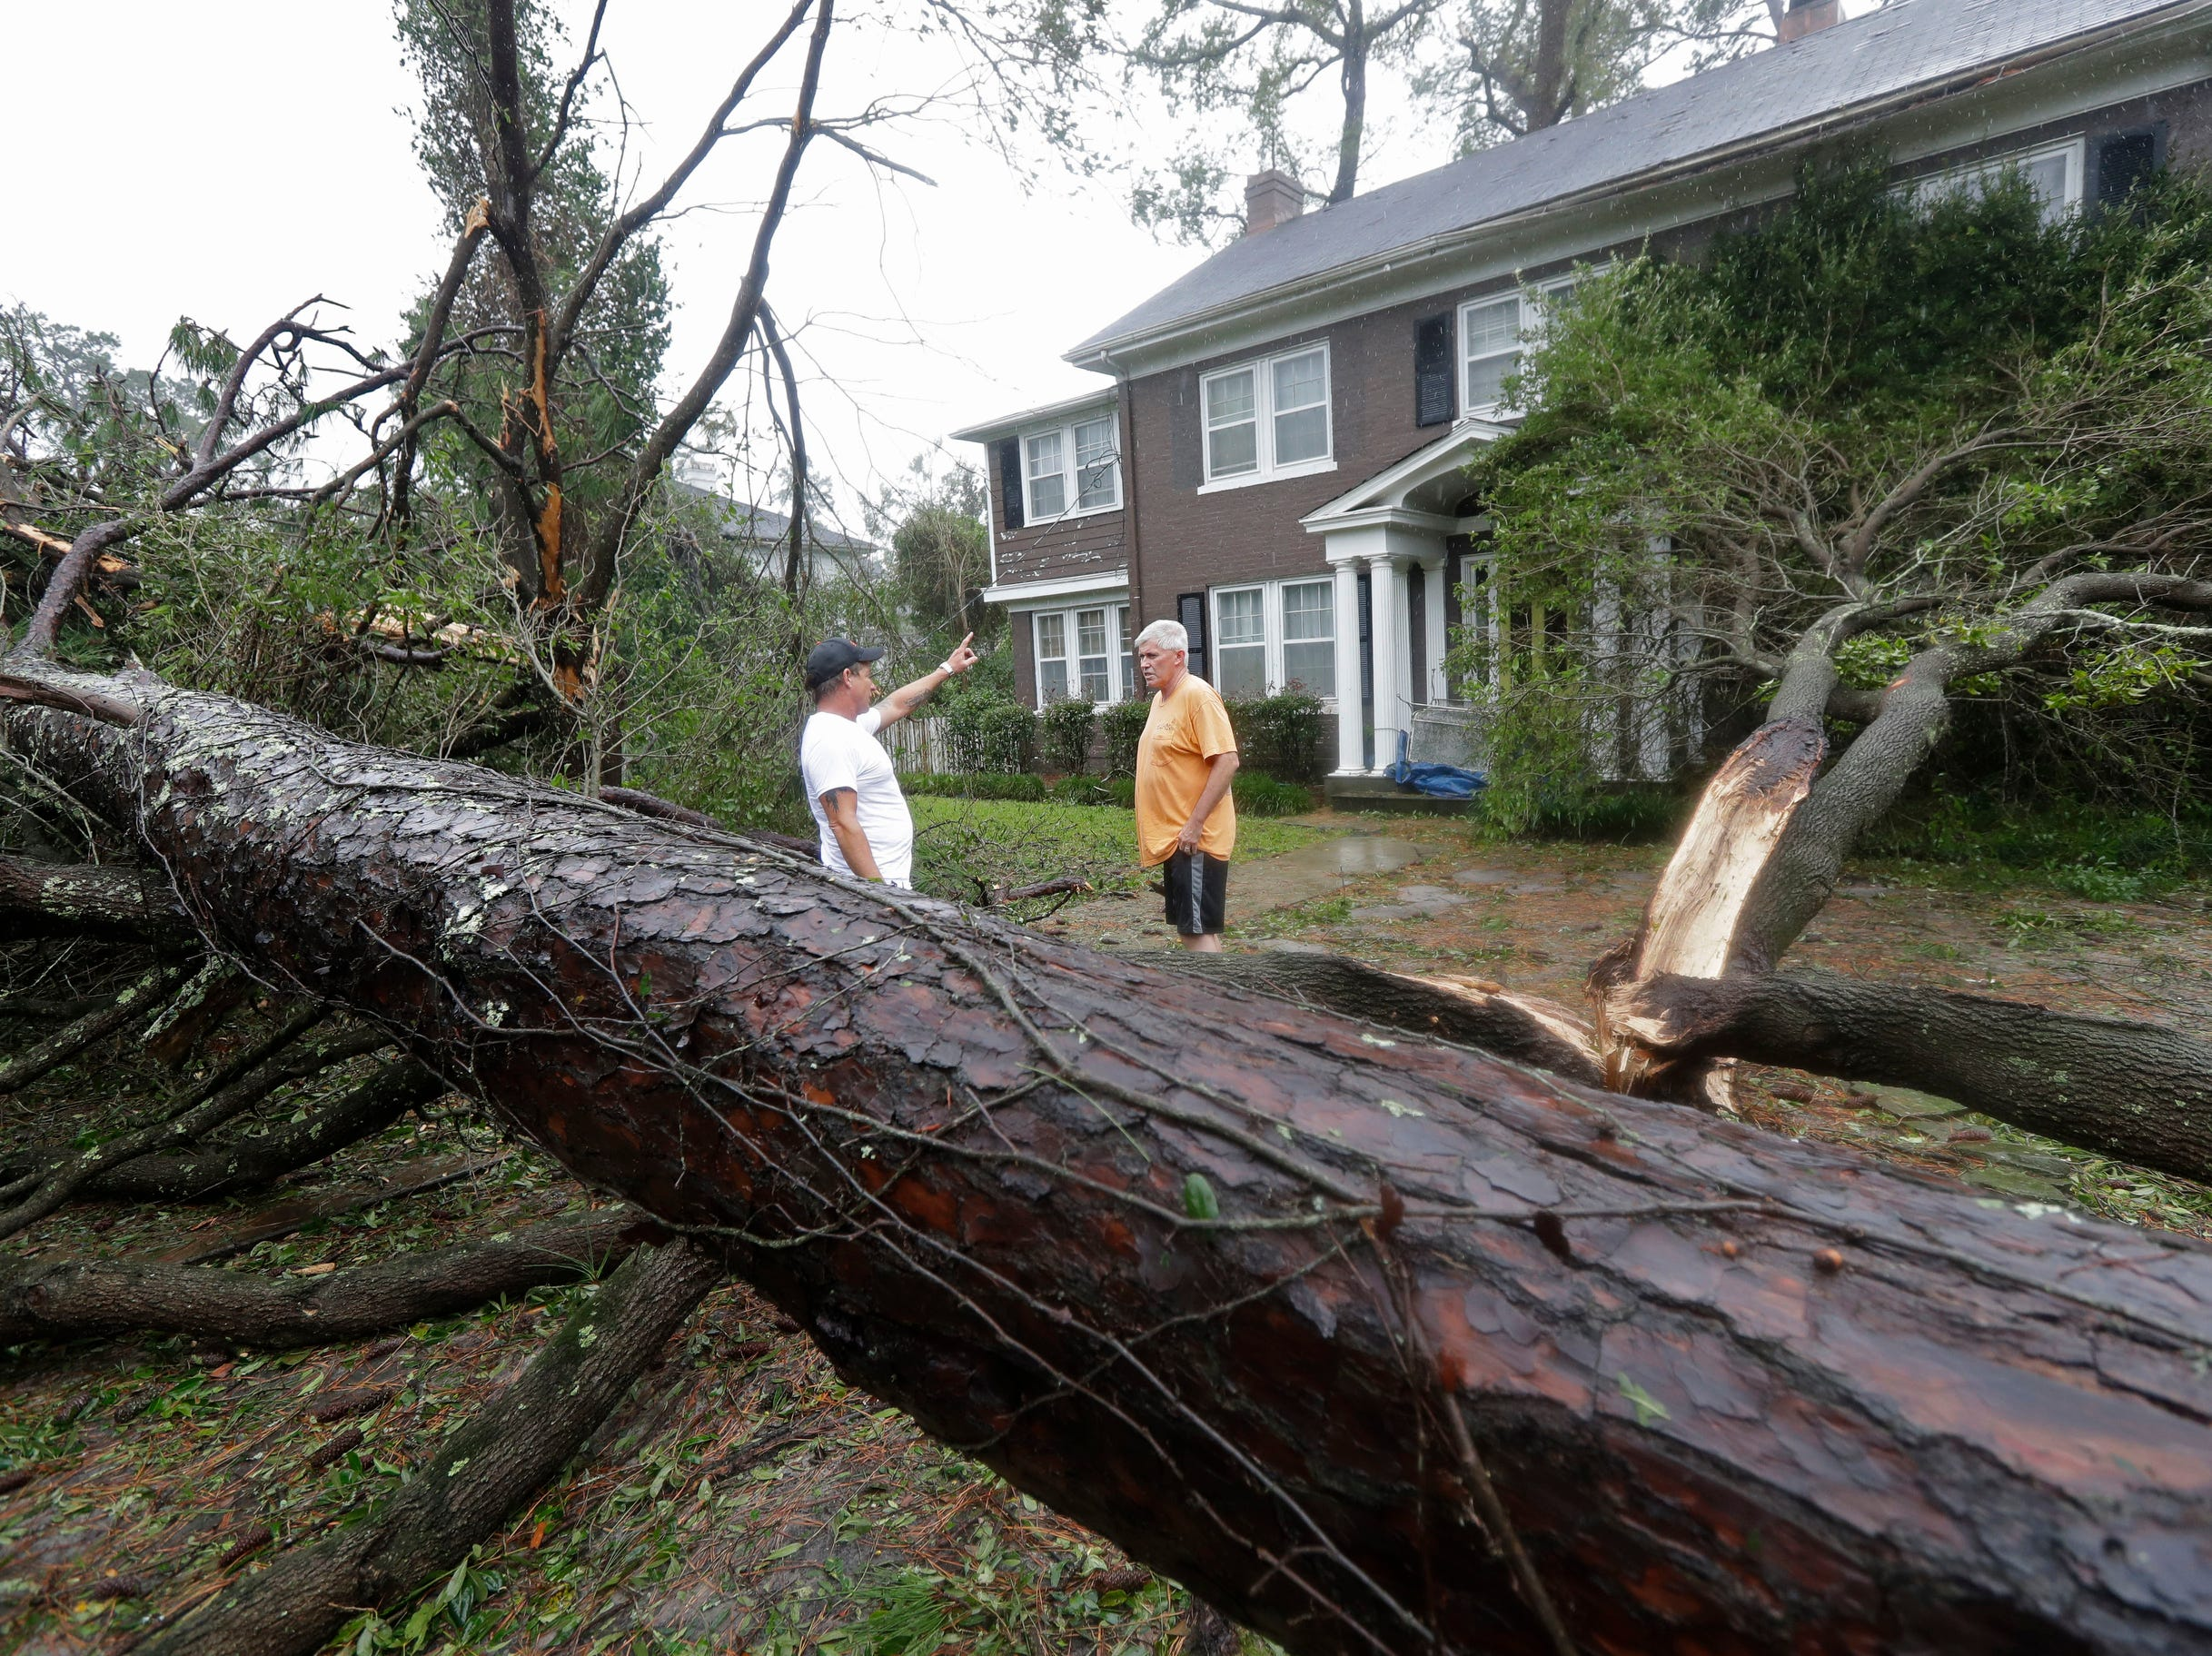 Chris Butcher, of Arborist Plus in Edgewood, Fla., talks with Mike Kiernan, right, about the damage to his home in Wilmington, N.C., after Hurricane Florence made landfall Friday.